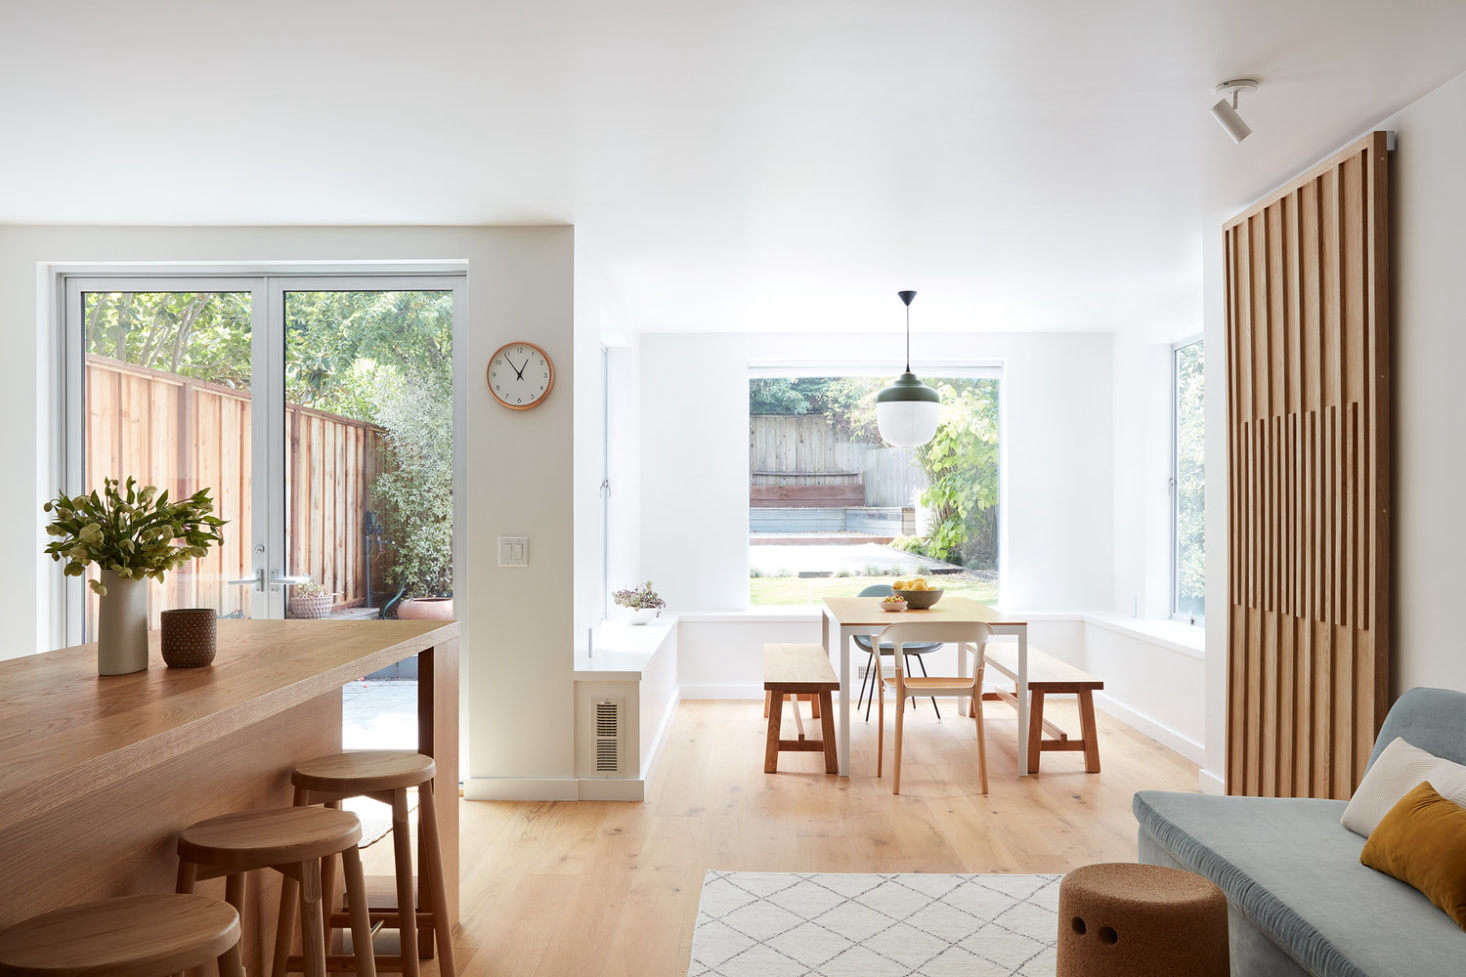 The kitchen is open to the living and dining areas. The walls are painted Benjamin Moore&#8